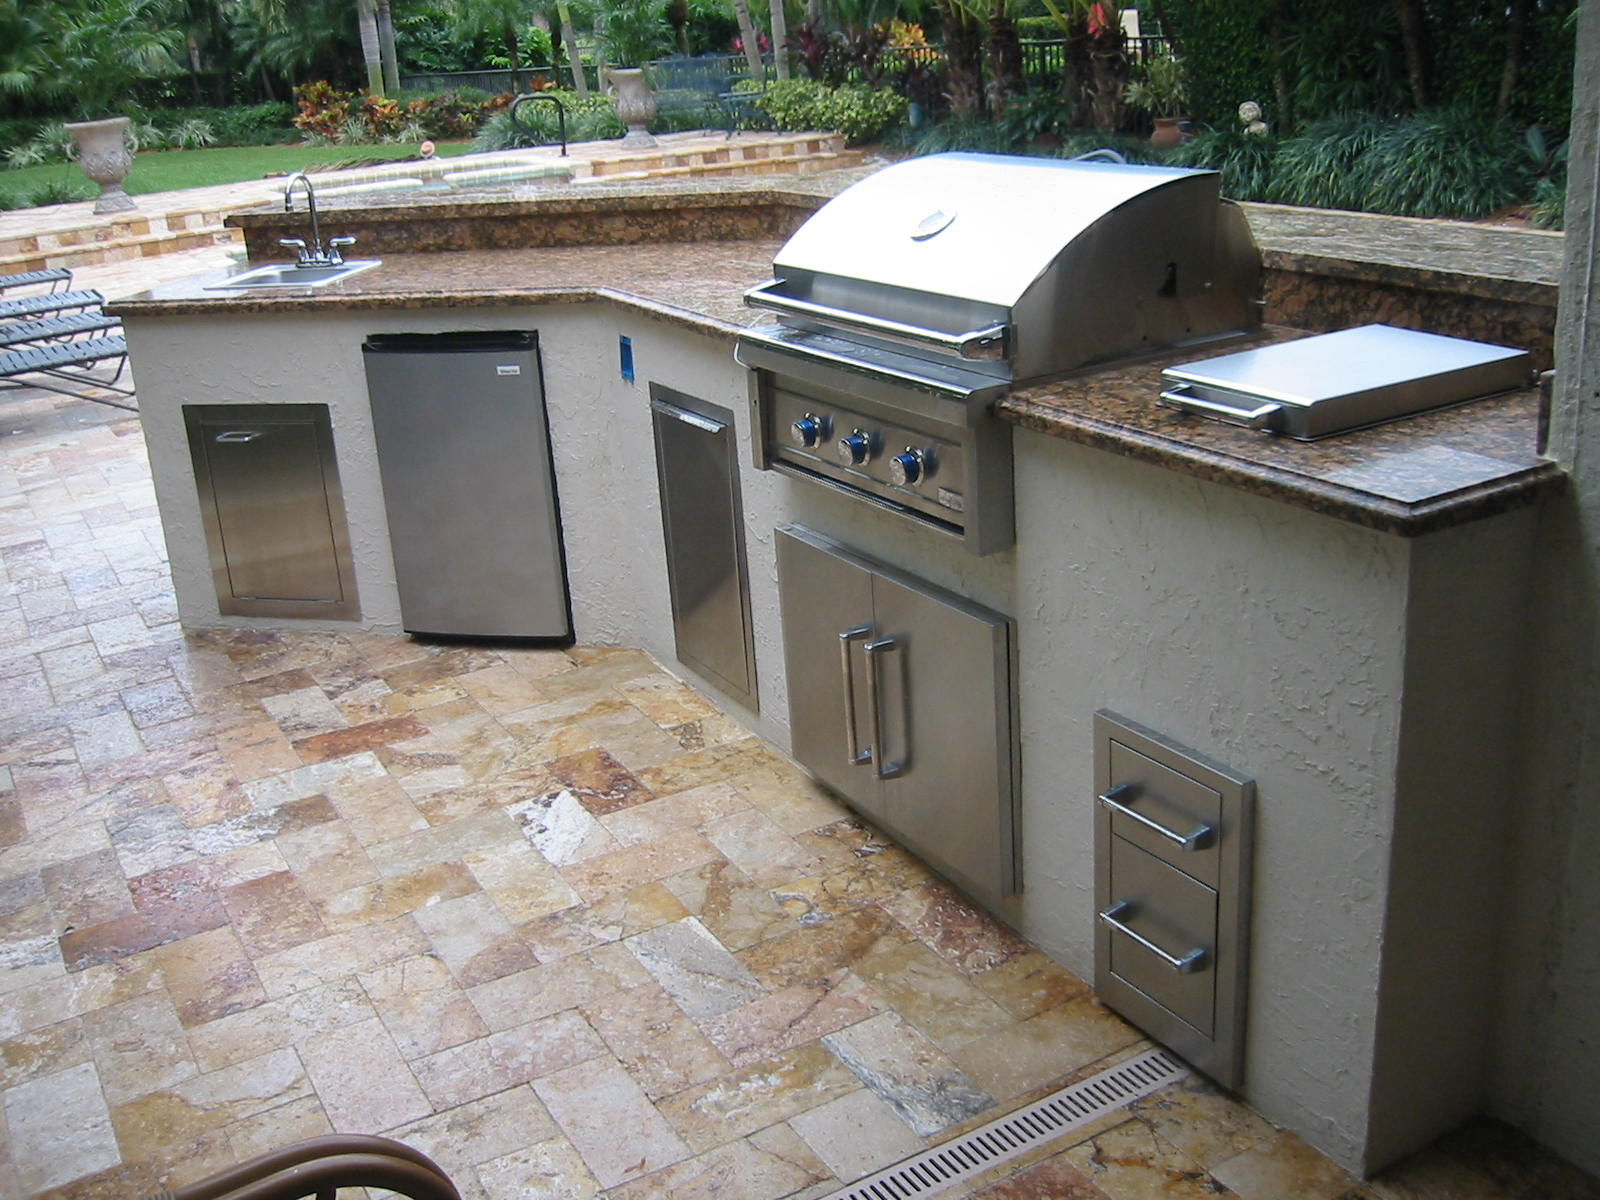 Http Outdoorkitchenexperts Com Outdoor Kitchens Outdoor Built In Gas Grill Html